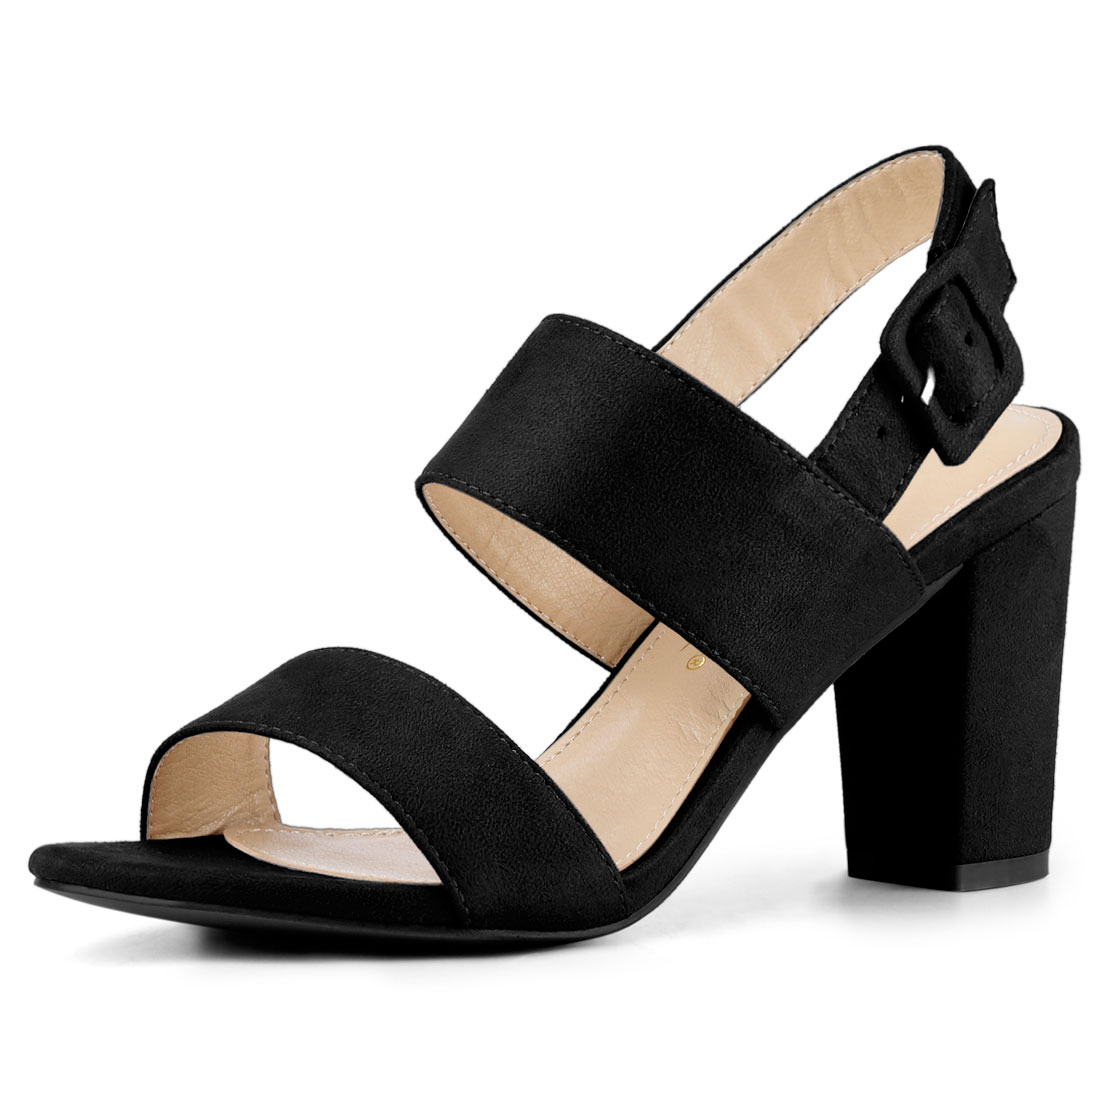 Women Open Toe Slingback High Block Heel Sandals Black US 9